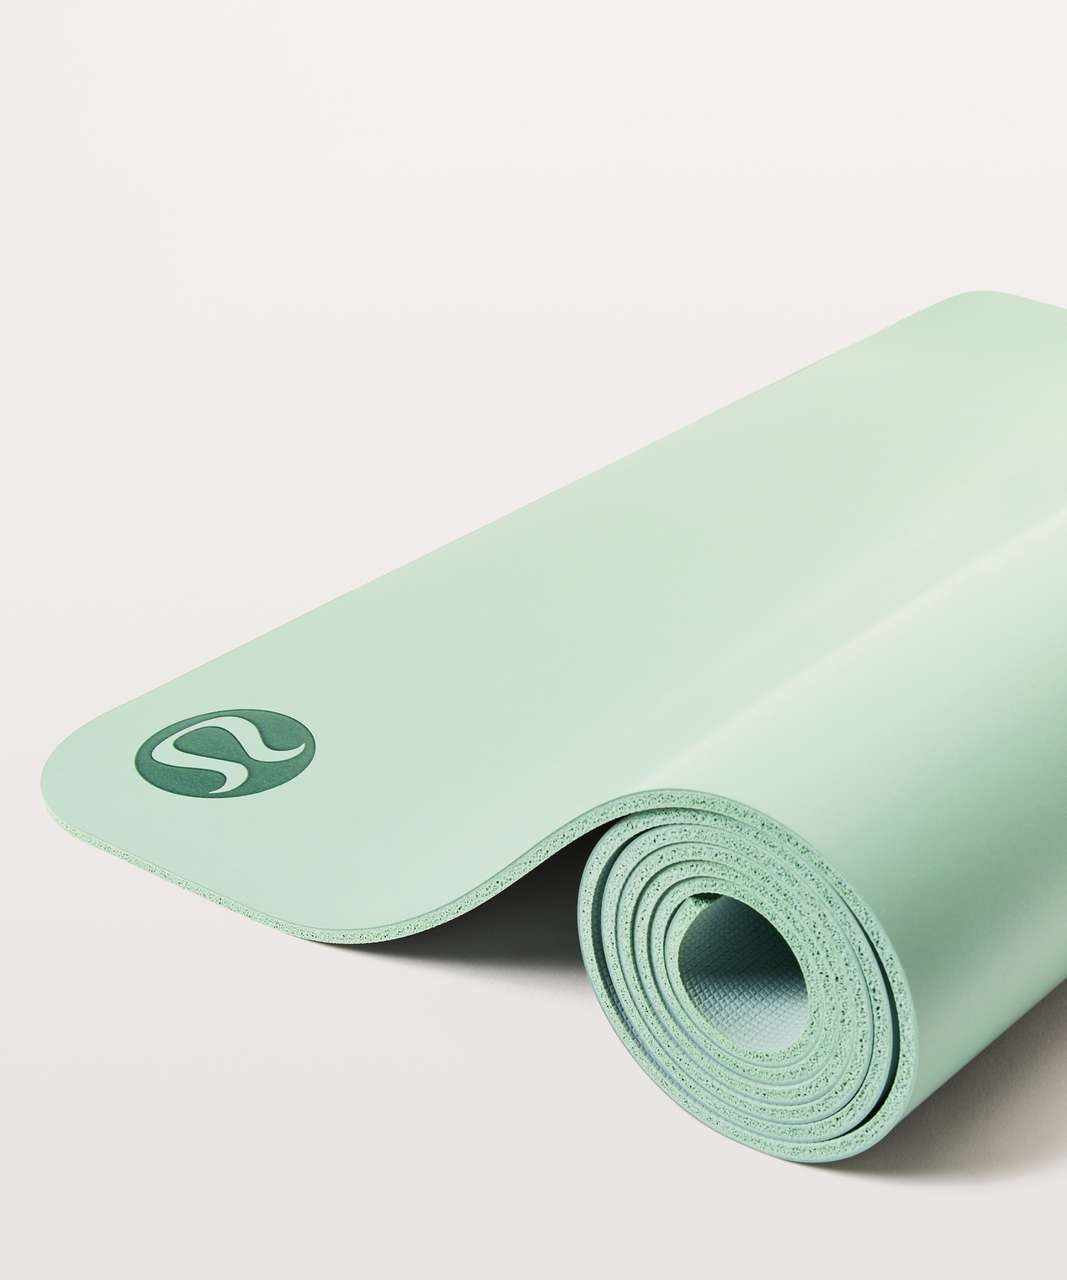 d4b2d162d2 Lululemon The Reversible Mat 5mm - Misty Moss - lulu fanatics